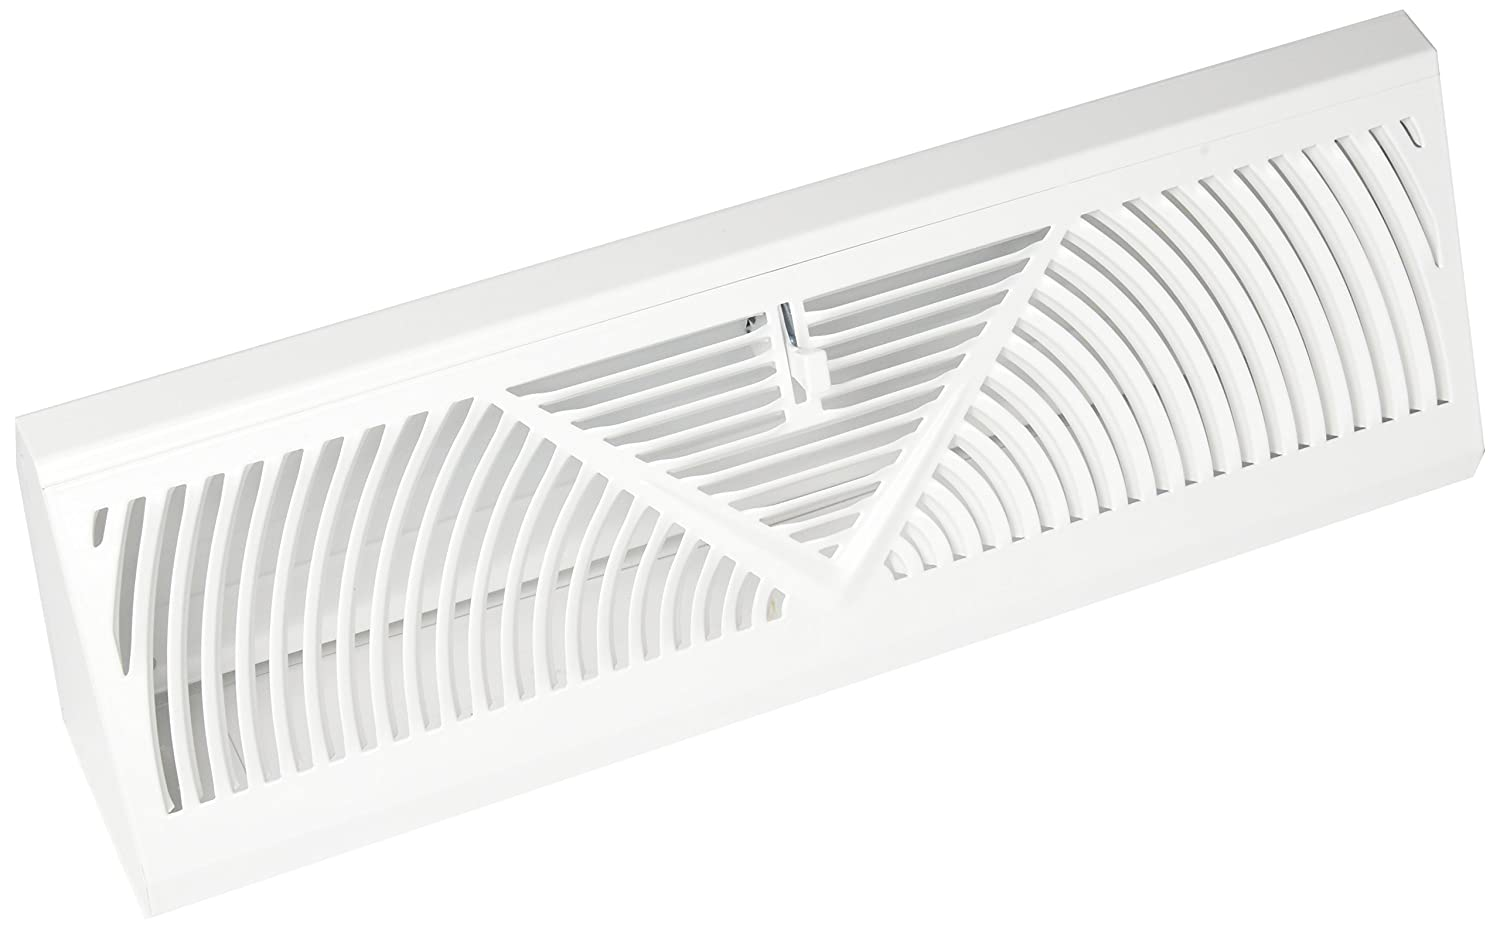 """Imperial 2-1/2"""" x 15"""" Baseboard Diffuser Register, White, RG1626-A"""